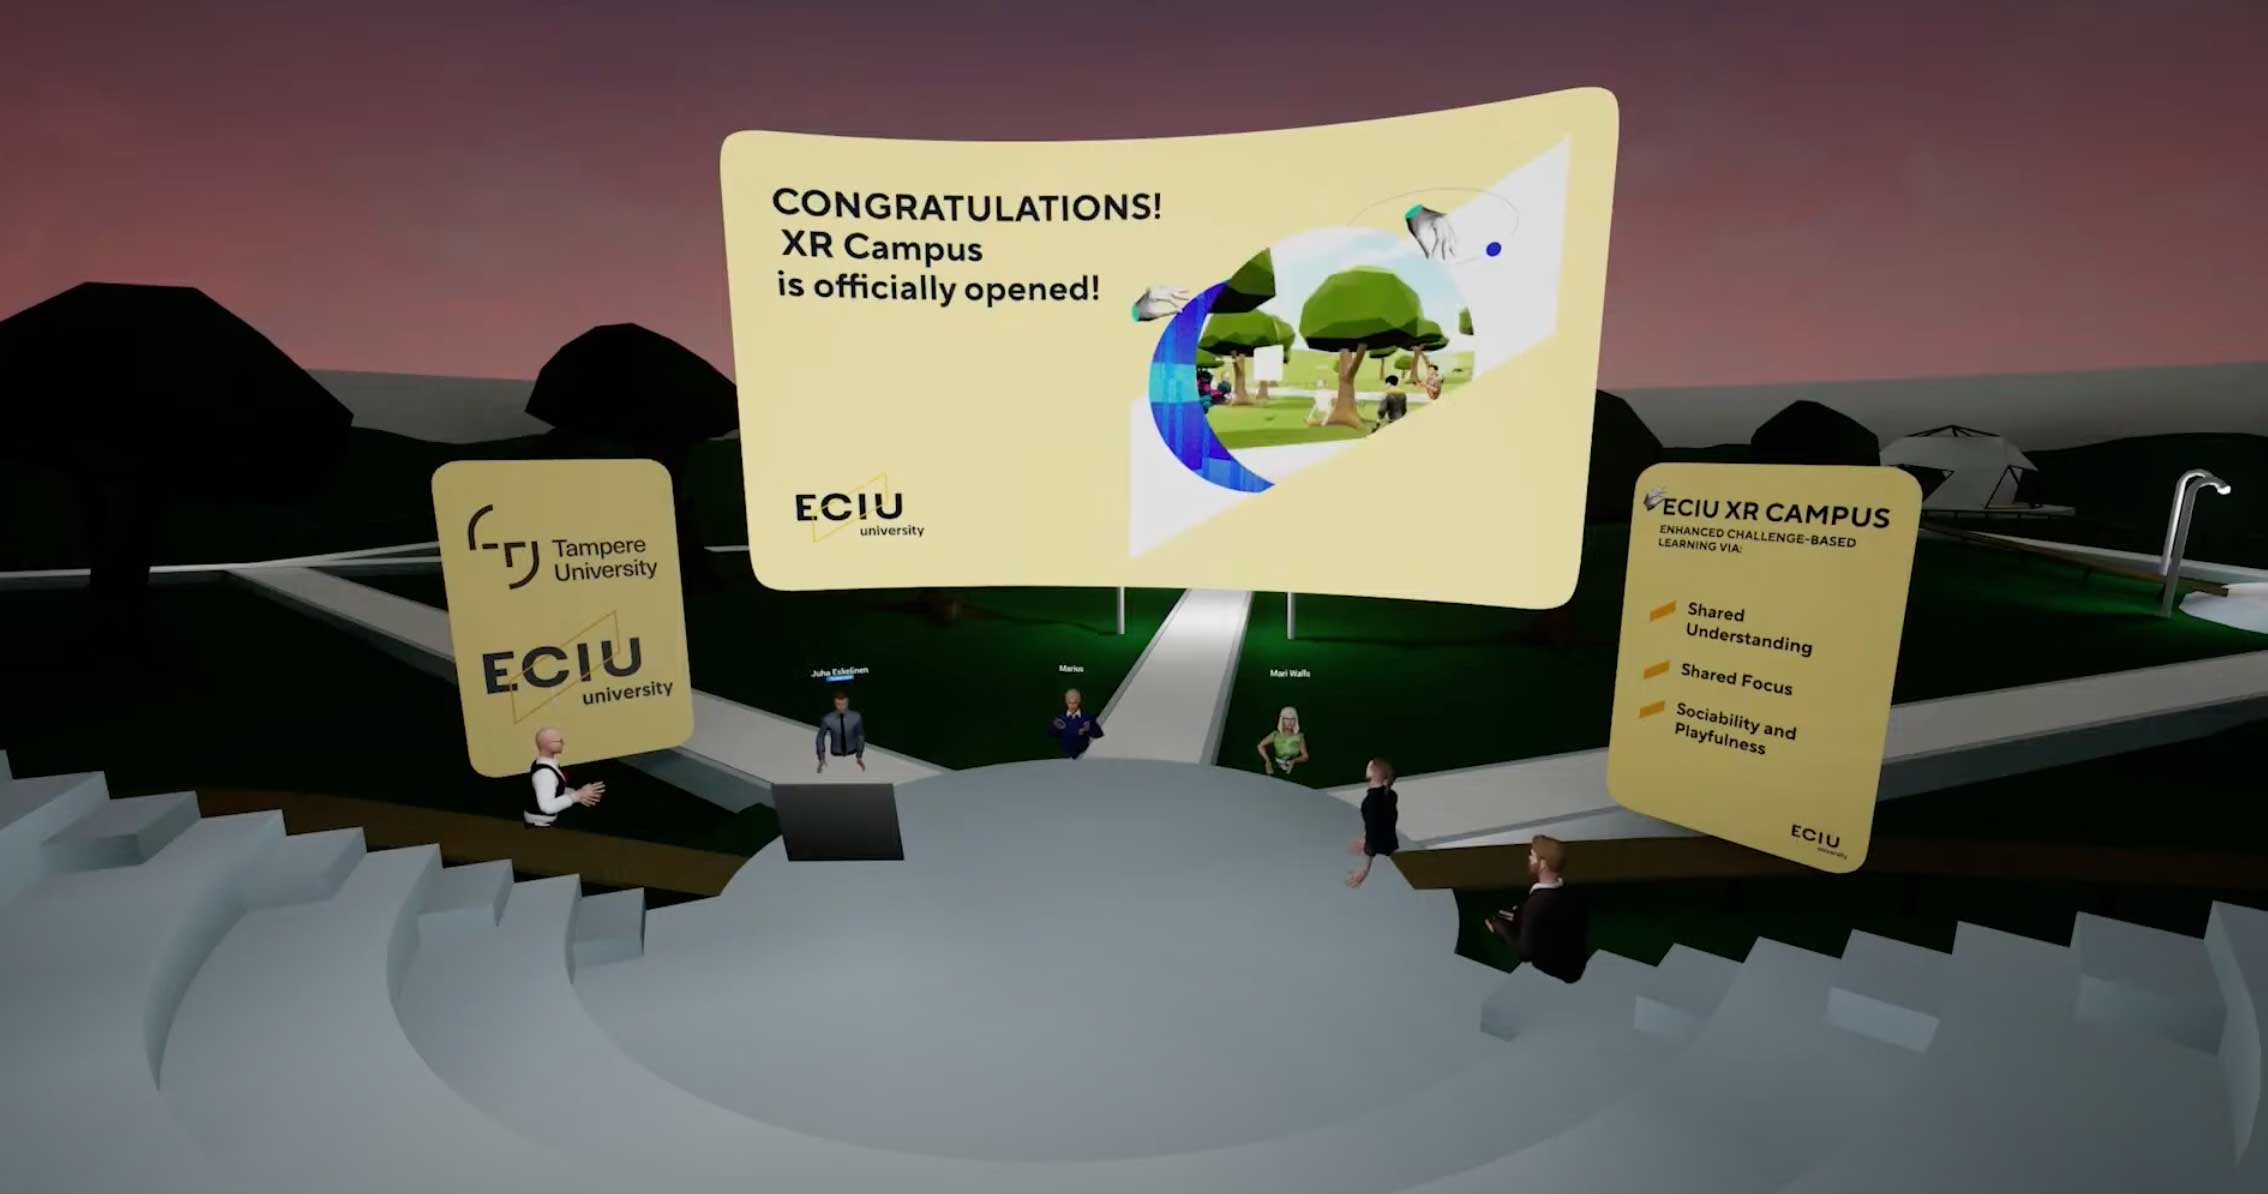 Big milestone for the European educational community: EU Commissioner opened the ECIU Extended Reality Campus